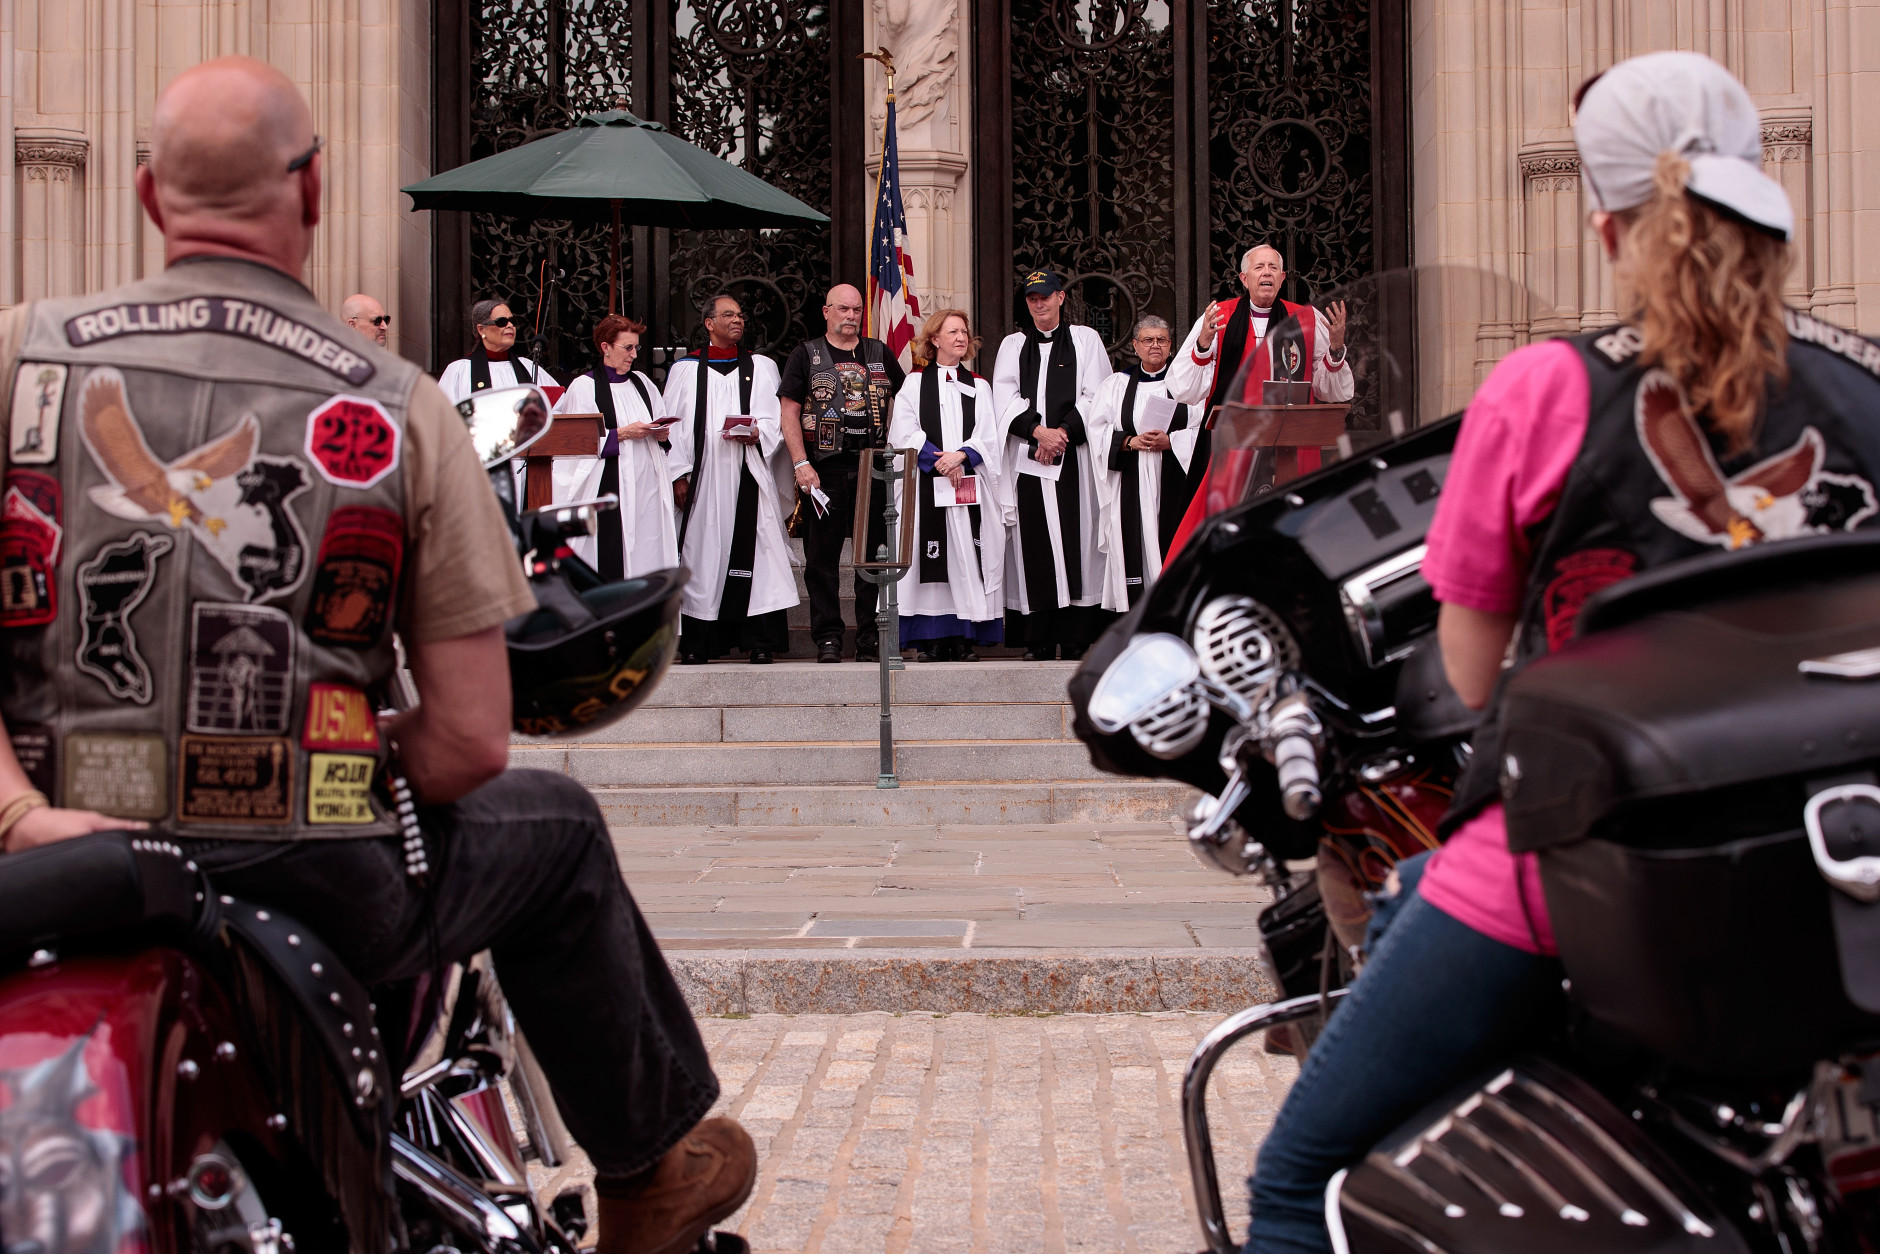 WASHINGTON, DC - MAY 27: Rolling Thunder members and supporters listen to opening remarks during the 'Blessing of the Bikes' at the Washington National Cathedral, May 27, 2016, in Washington, DC. Rolling Thunder members and supporters will participate in a motorcycle rally on Sunday afternoon in Washington. Rolling Thunder is an advocacy group that seeks to bring awareness to prisoners of war (POWs) and missing in action (MIA) service members of all U.S. wars. (Photo by Drew Angerer/Getty Images)